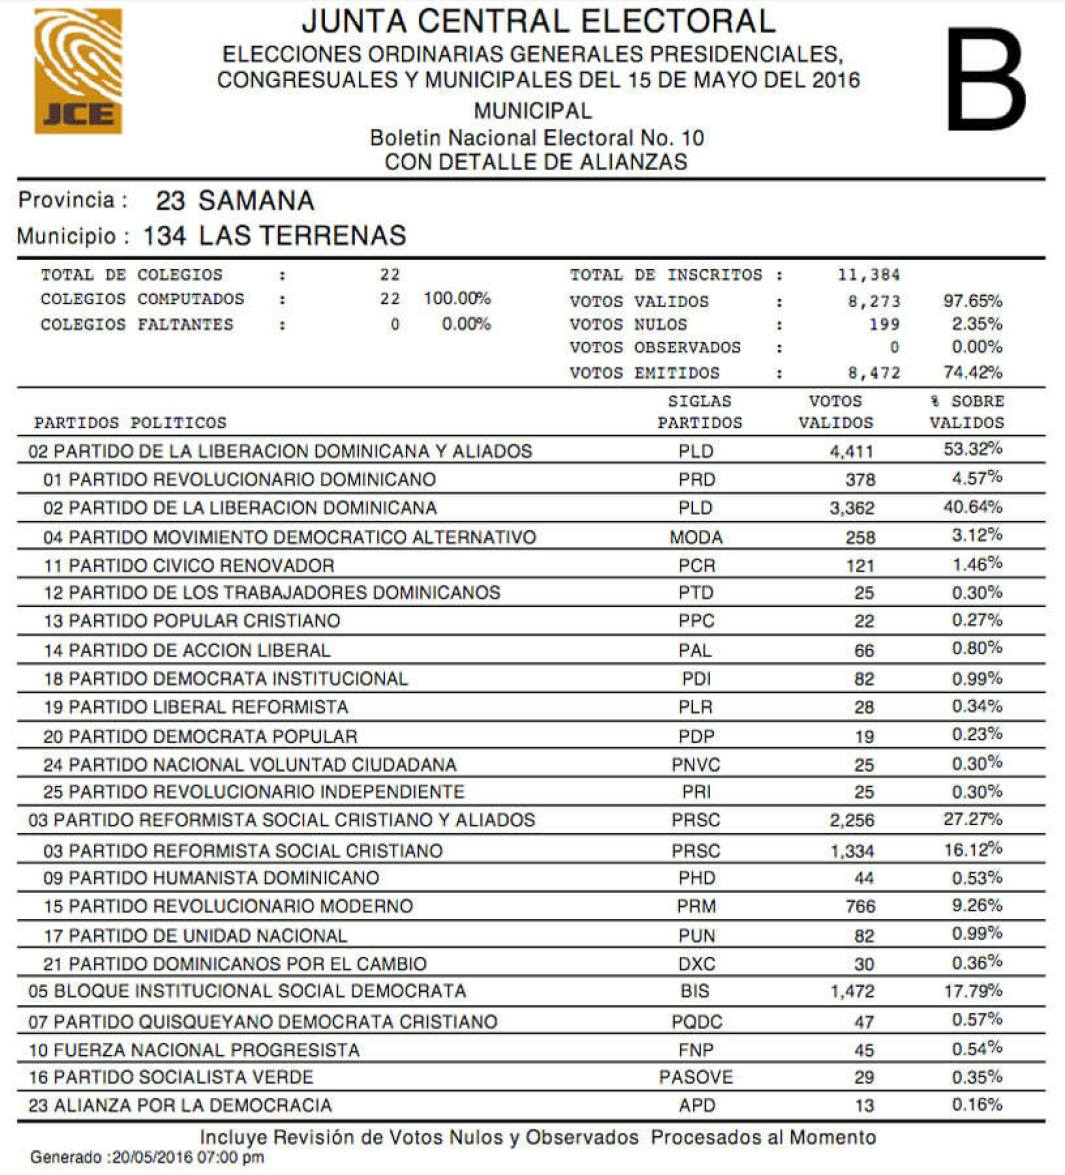 Results of the elections Las Terrenas 2016